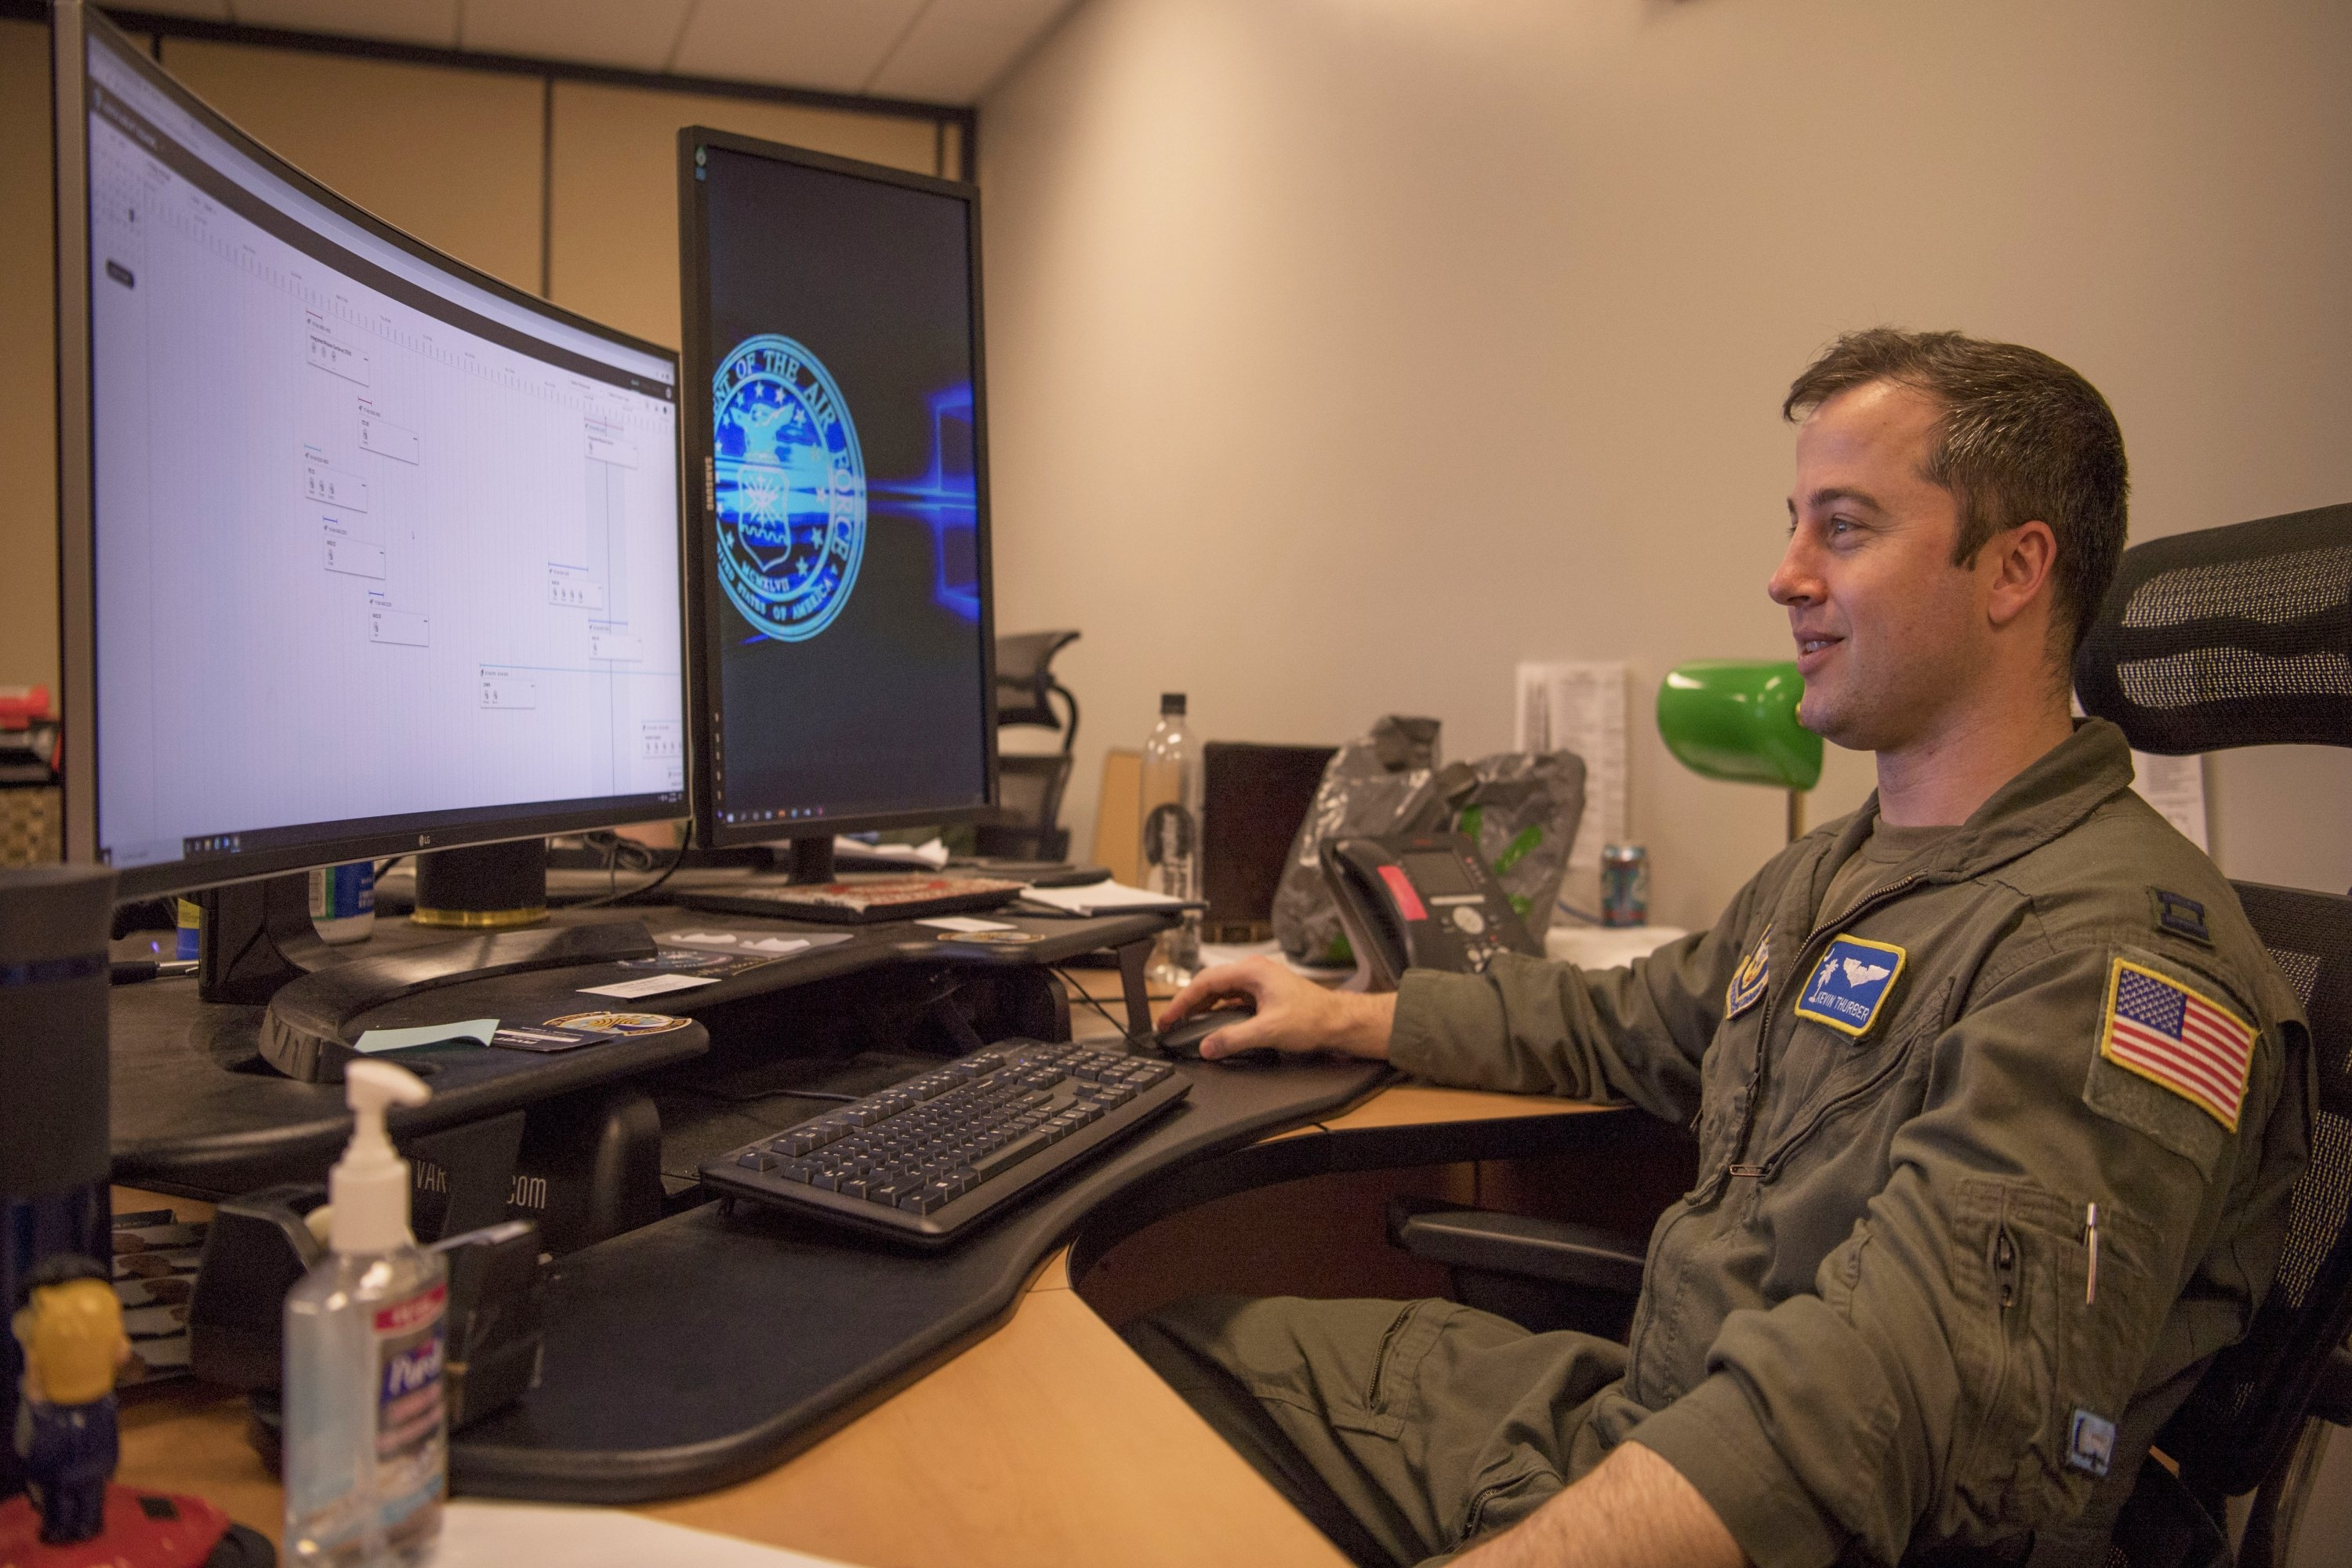 US Air Force pilots get an artificial intelligence assist with scheduling aircrews